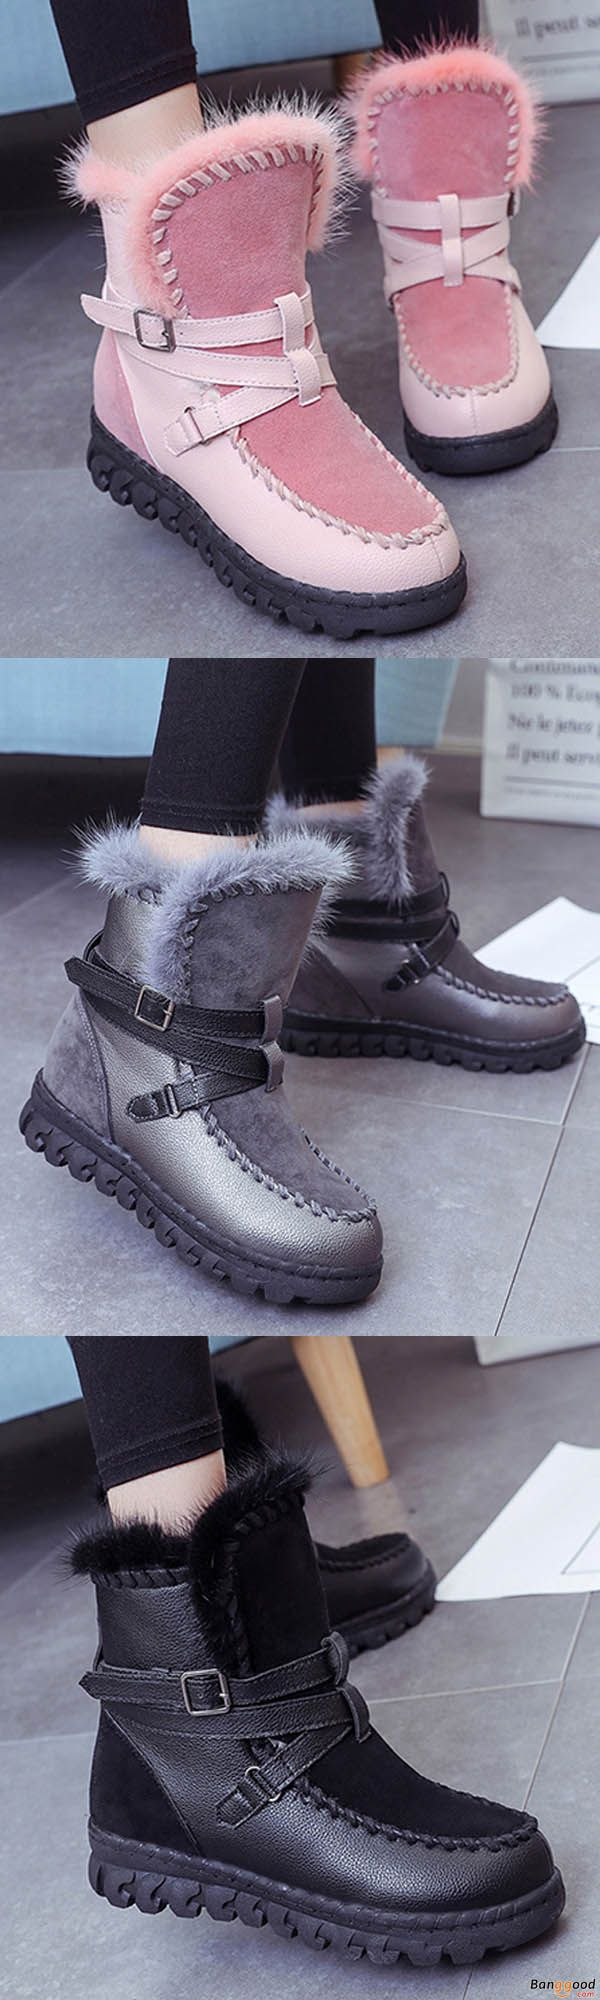 US$36.69+ Free shipping. Winter Round Toe Lace Up Keep Warm Flats Snow Boots. shoes boots, boots outfit, womens boots, winter boots, ankle boots, slip on shoes, snow boots. Buy now! #shops #style #ideas #womens #shoes #boots #snow #diy #plussize #outfit #ankle #short #guide #winter #cheap #hunter #2017 #fashion #howtowear